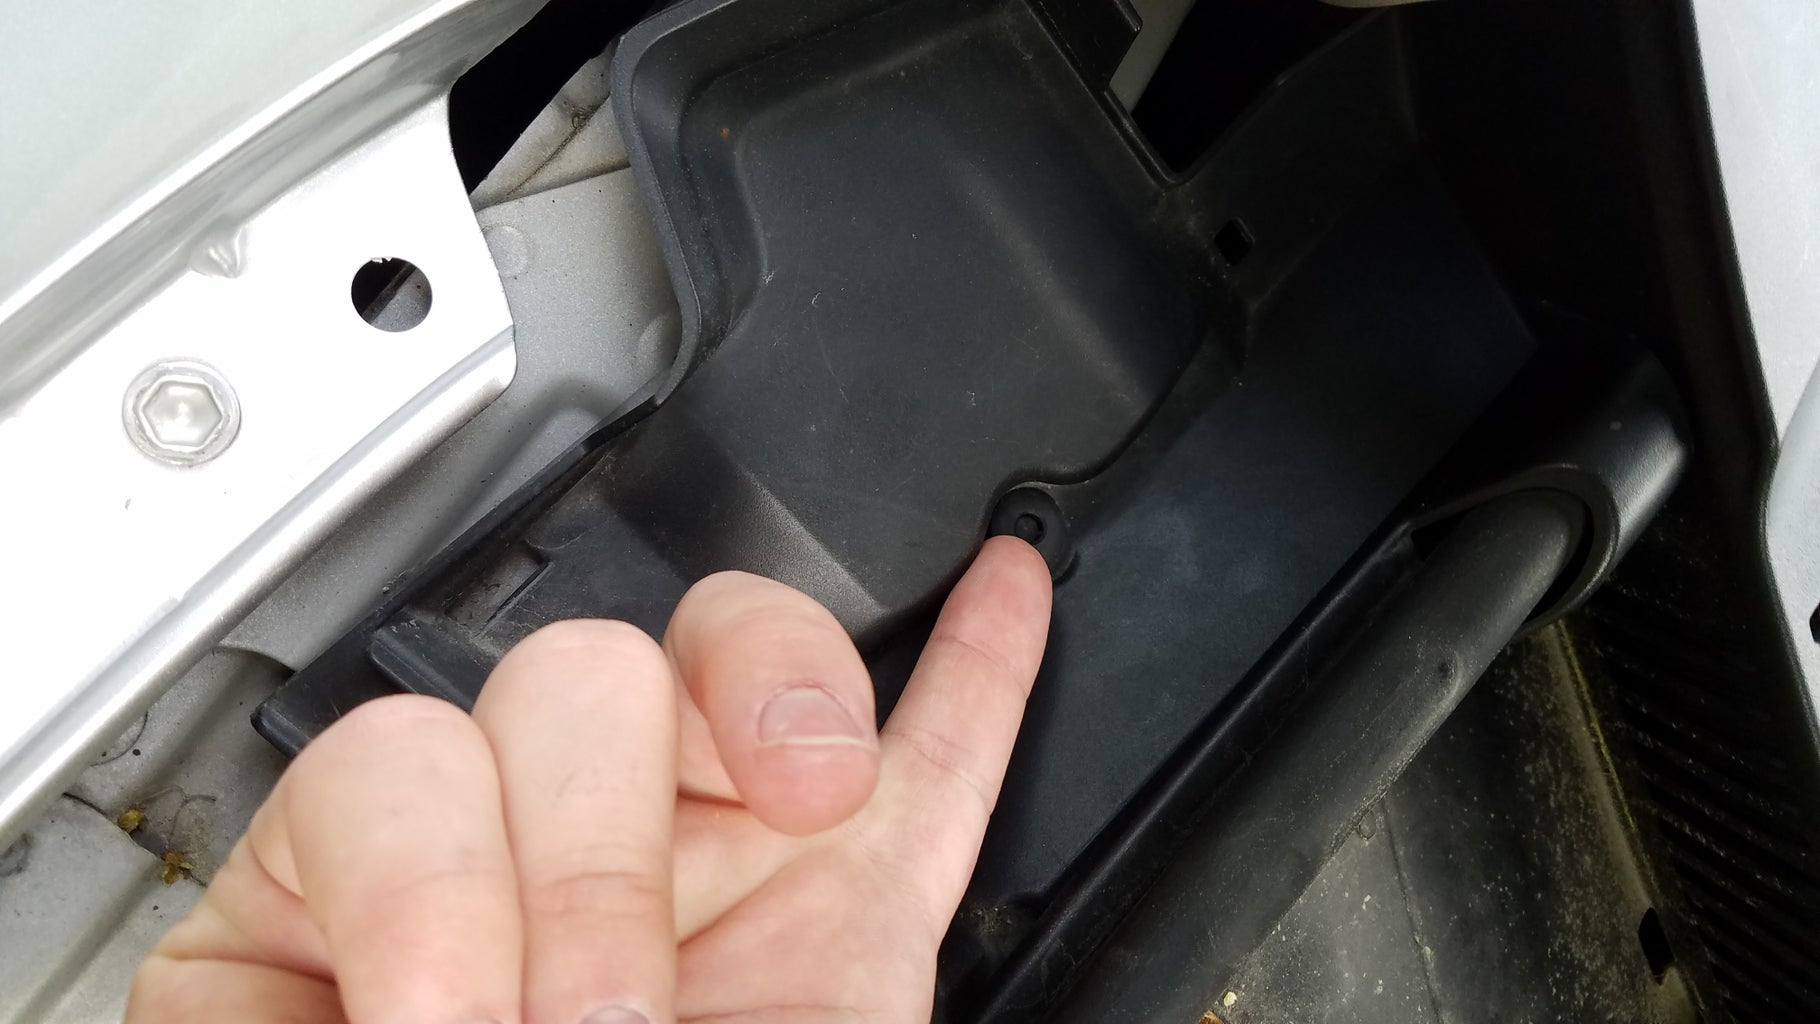 Open Up the Hood and Find the Plastic Rivet